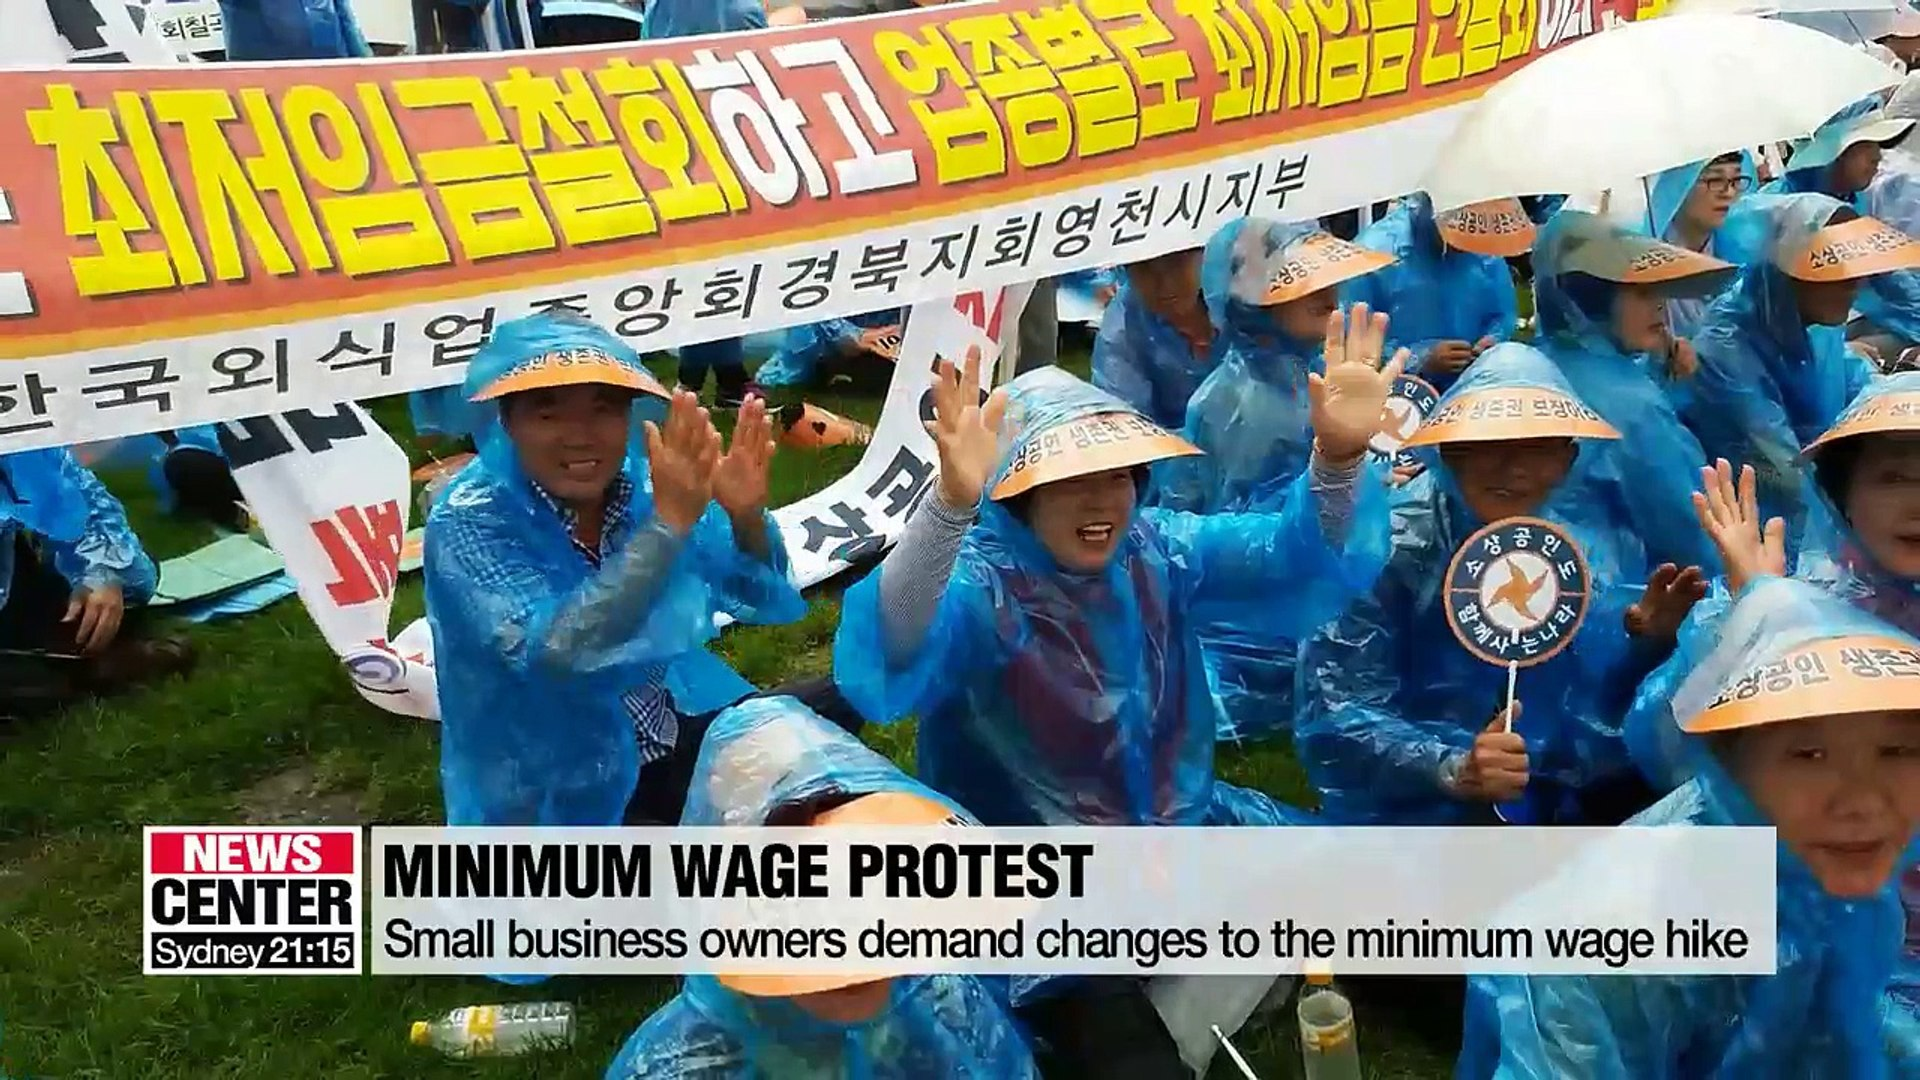 Small business owners hold protest against minimum wage hike